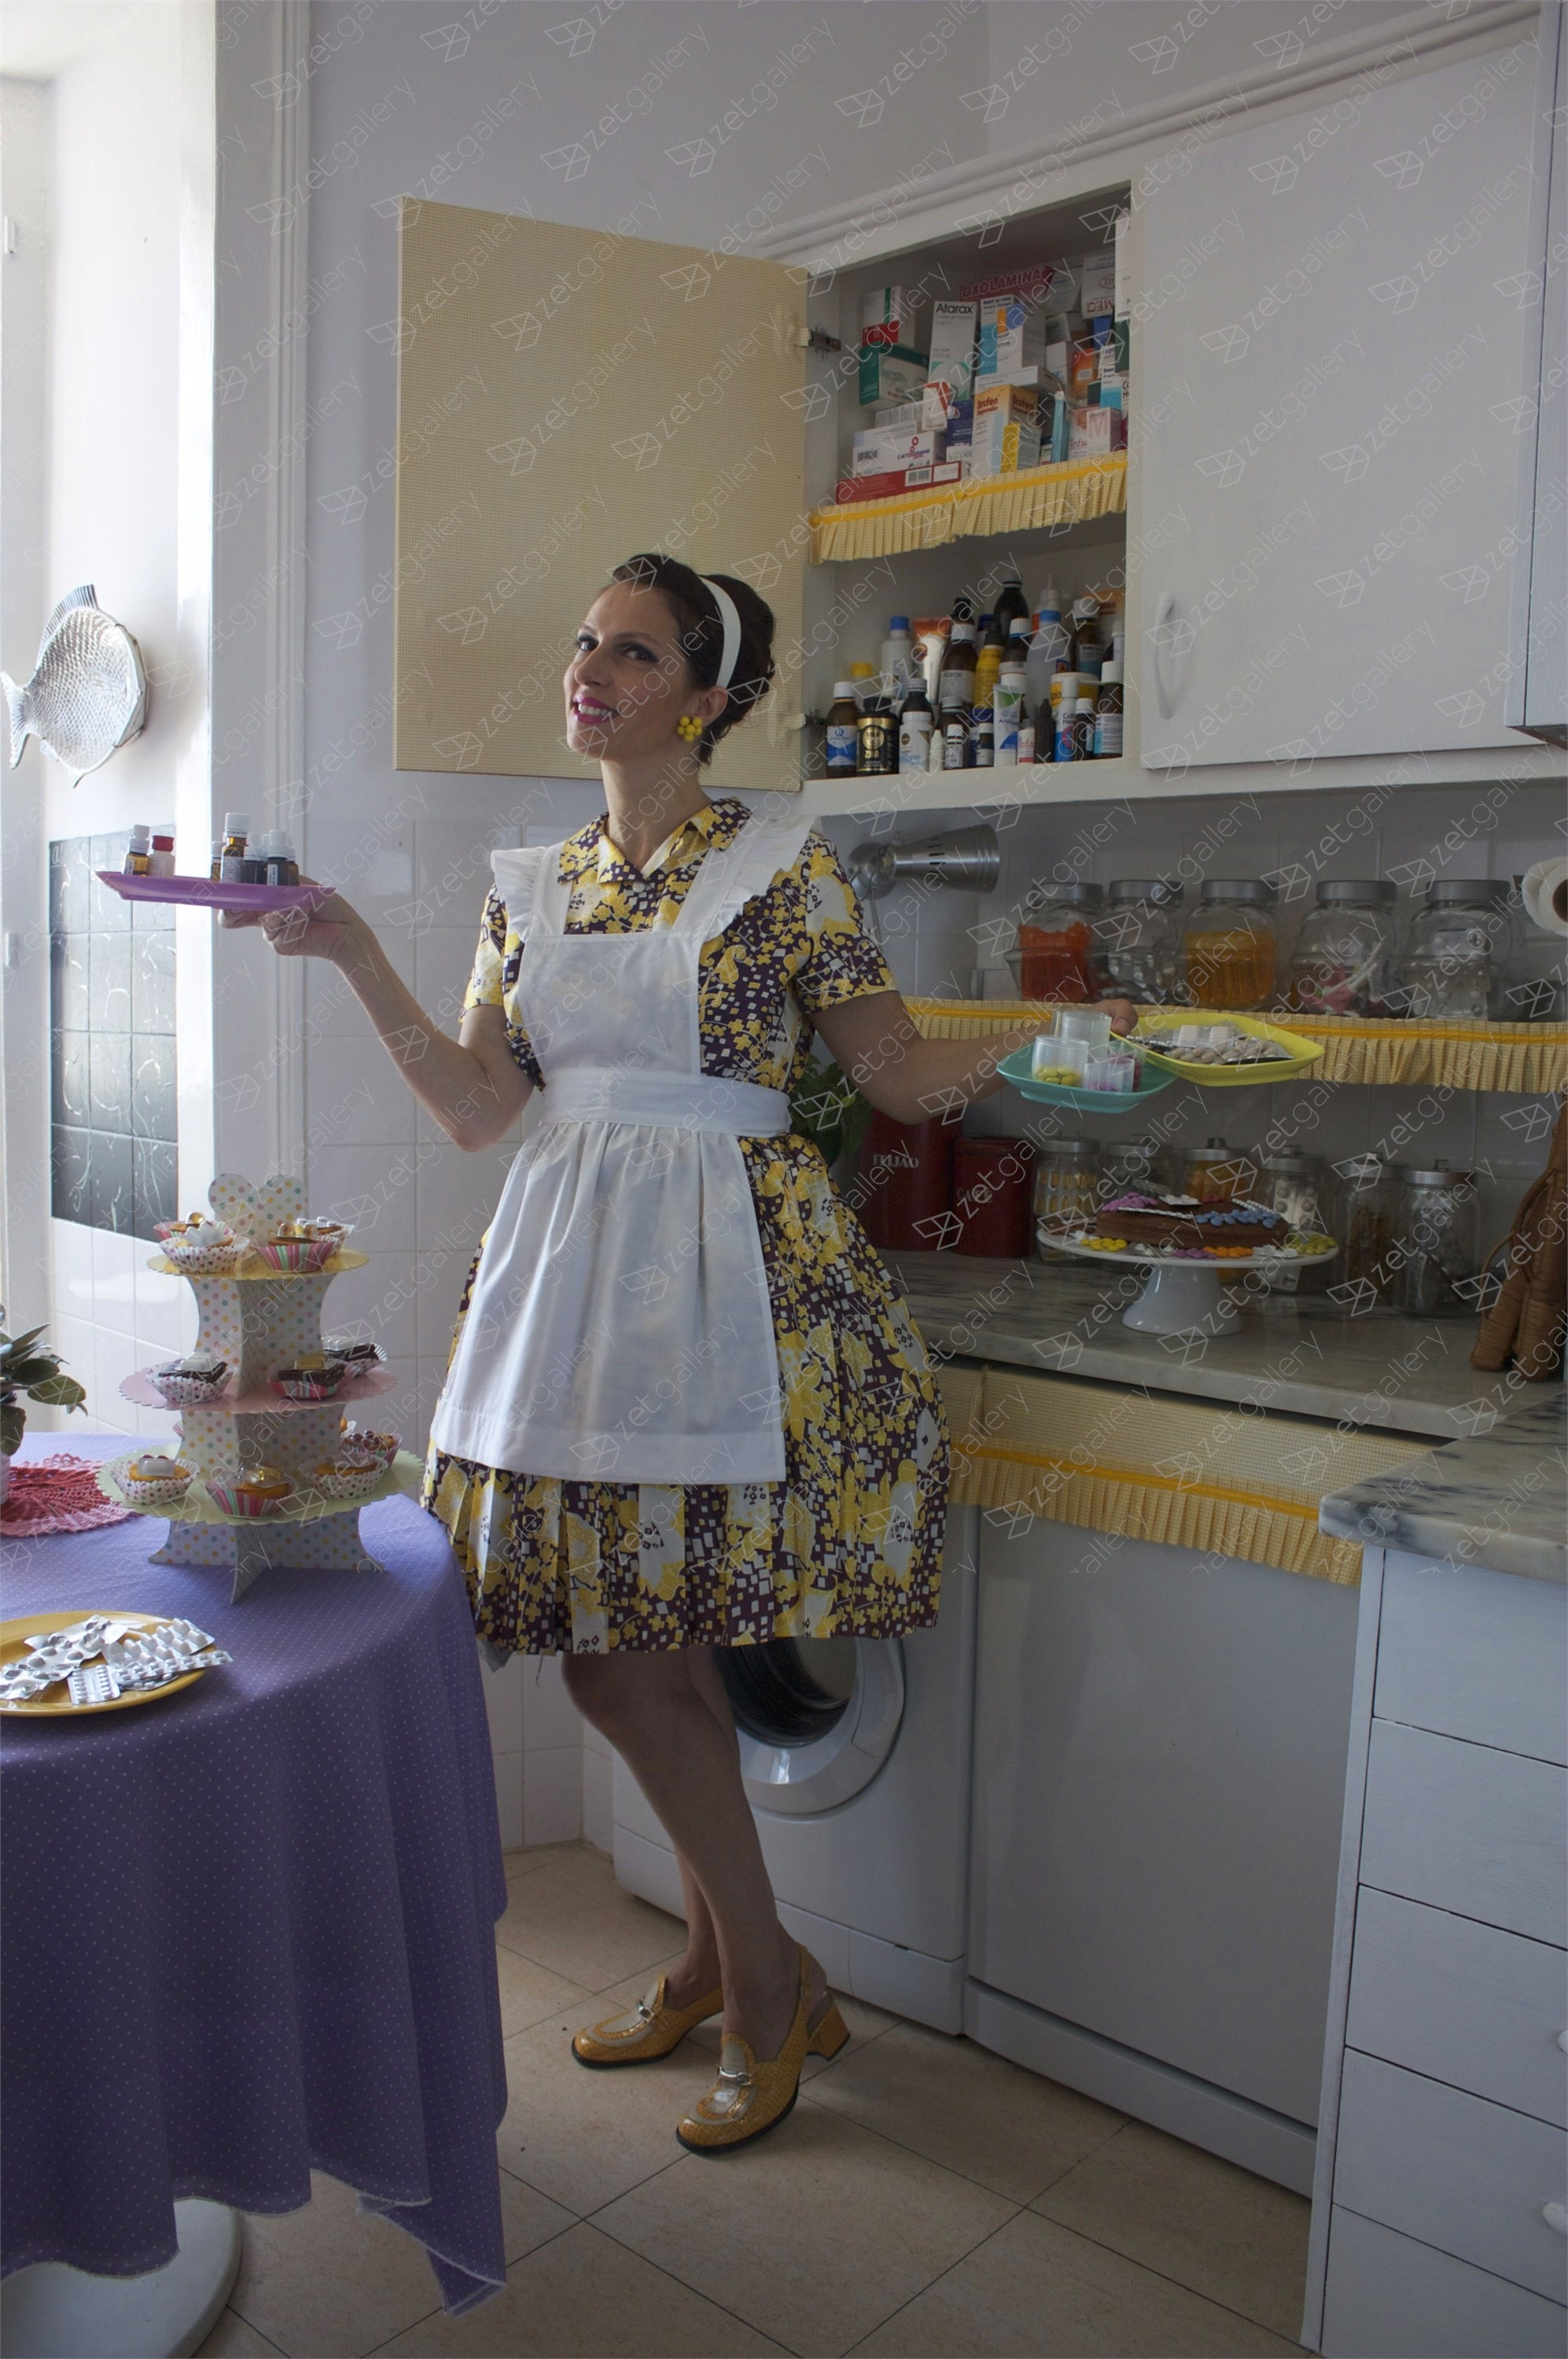 The perfect housewife, original Avant-Garde Digital Photography by Claudia Clemente